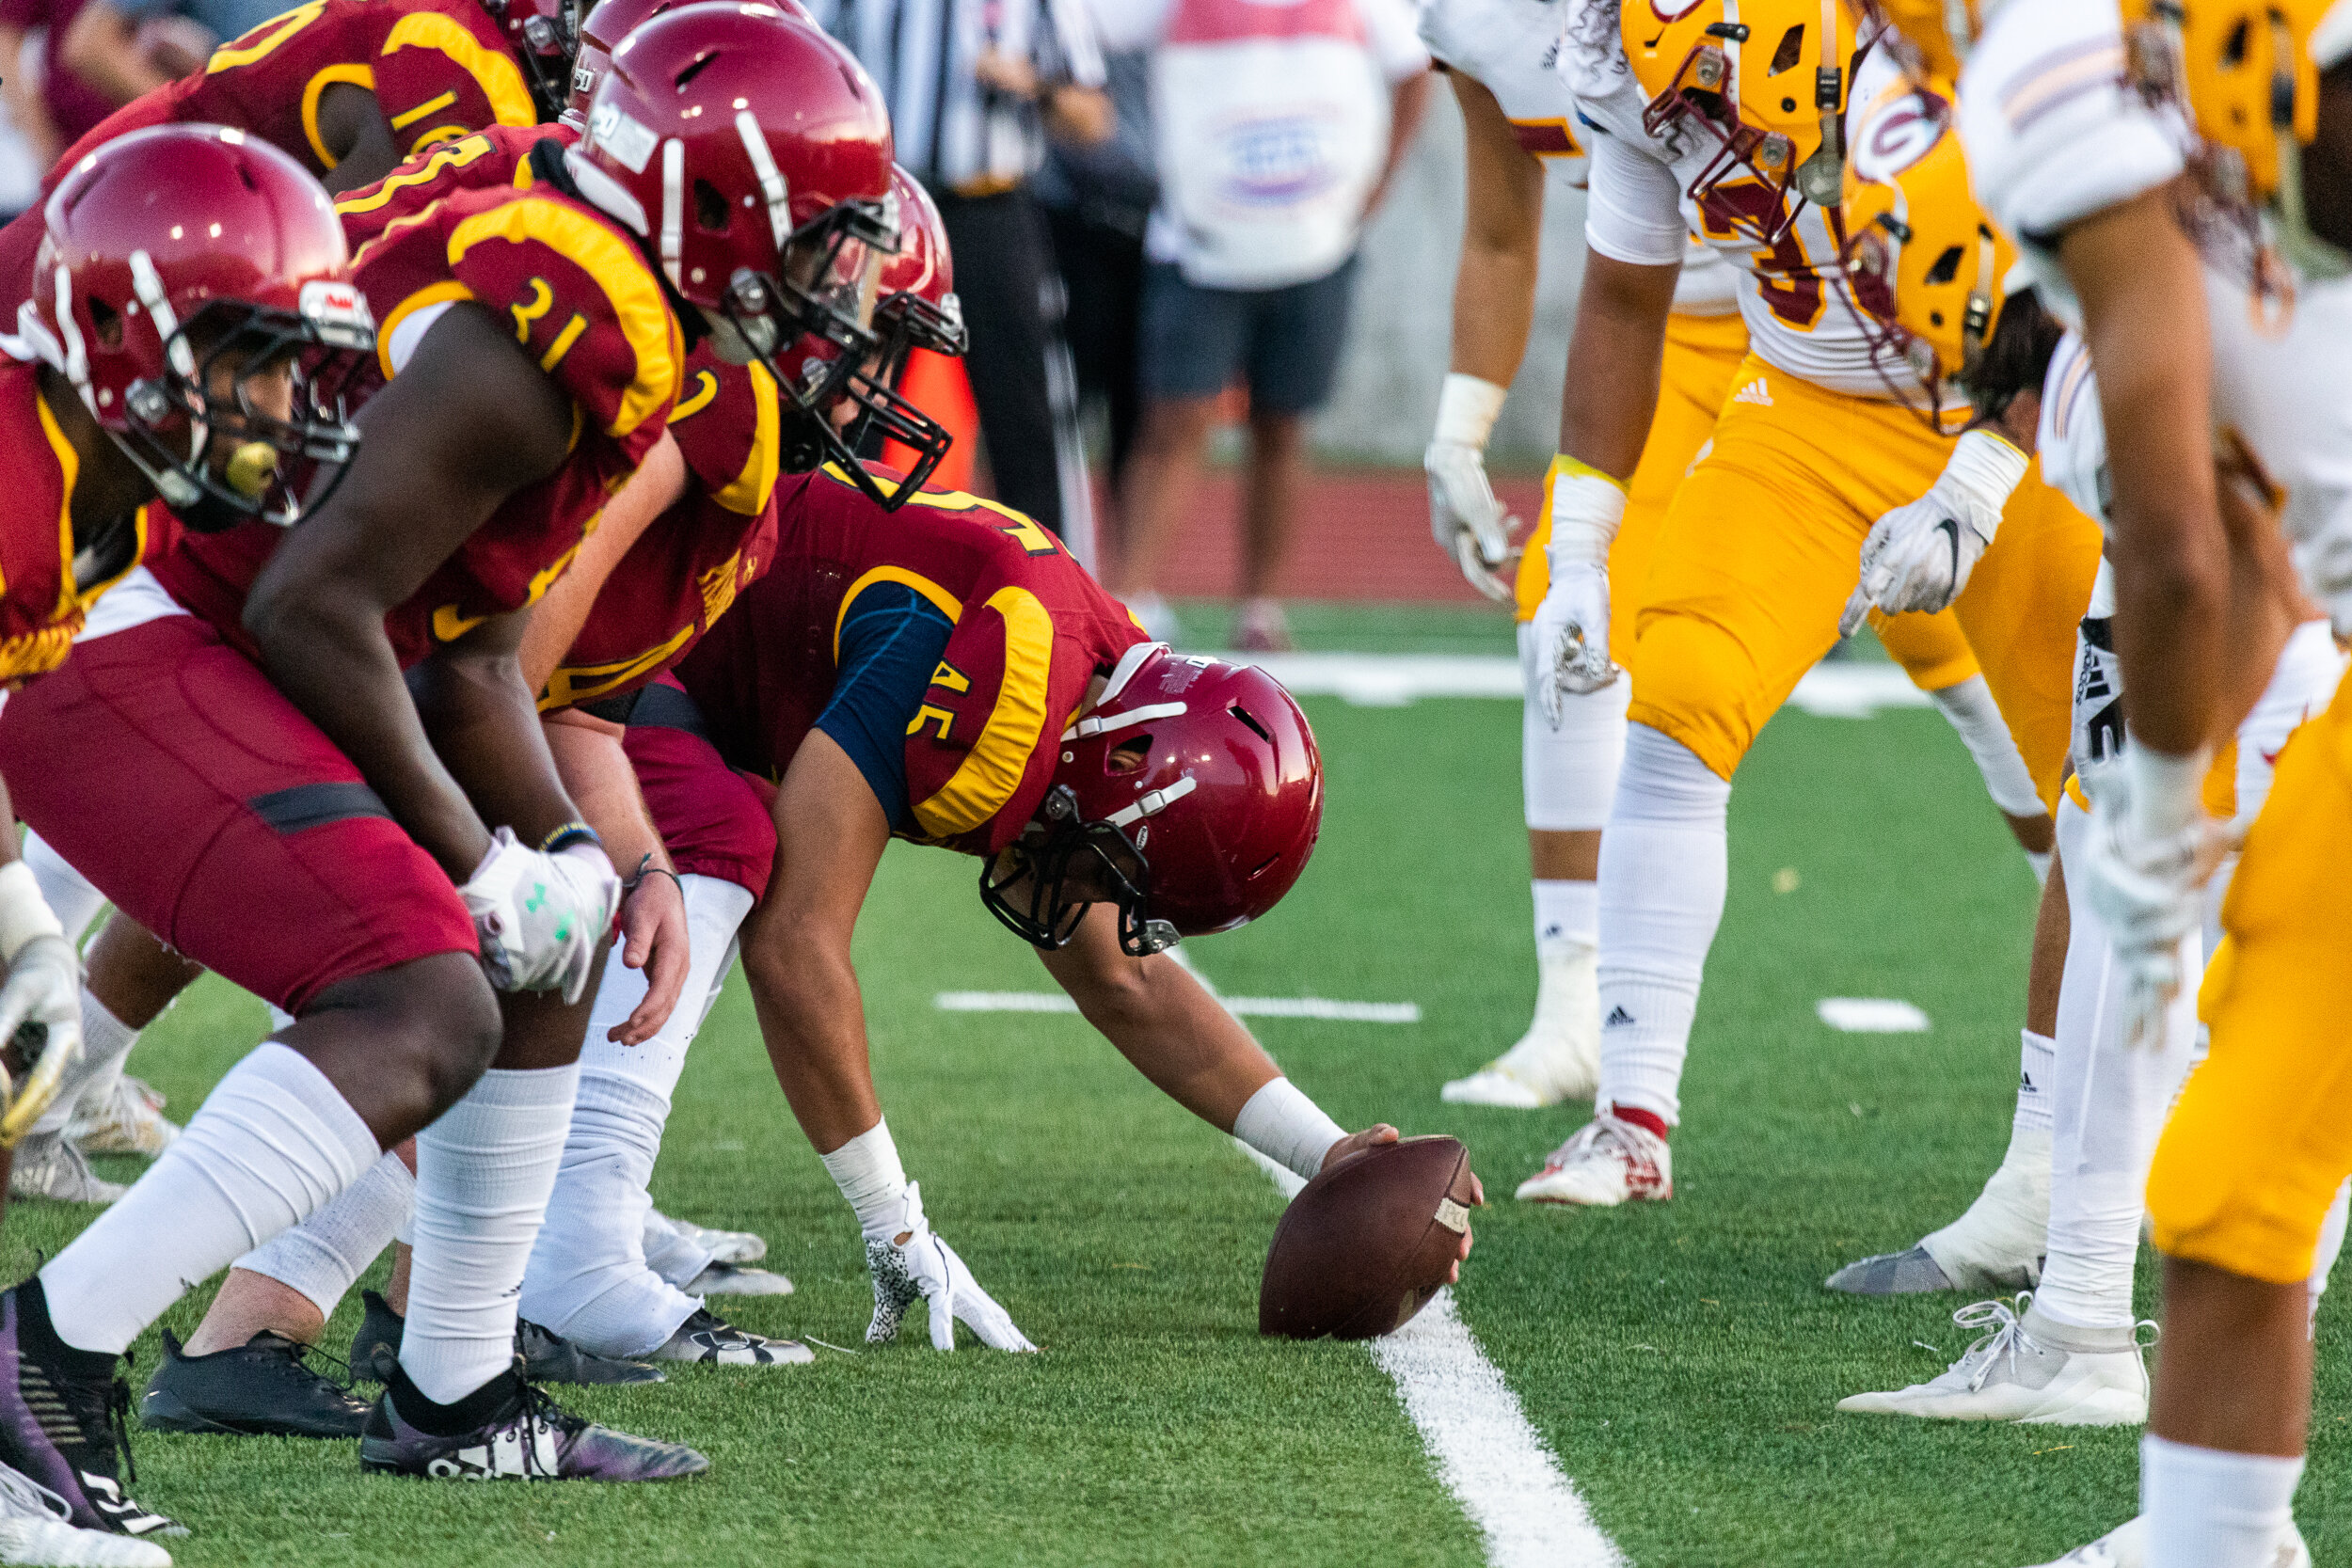 Nicholas Slobin/ Courier Pasadena City College Lancers and Saddleback College Gauchos prepare for the hike during a SCFA Non-League game at PCC's Robinson Stadium on Saturday, September 21, 2019.